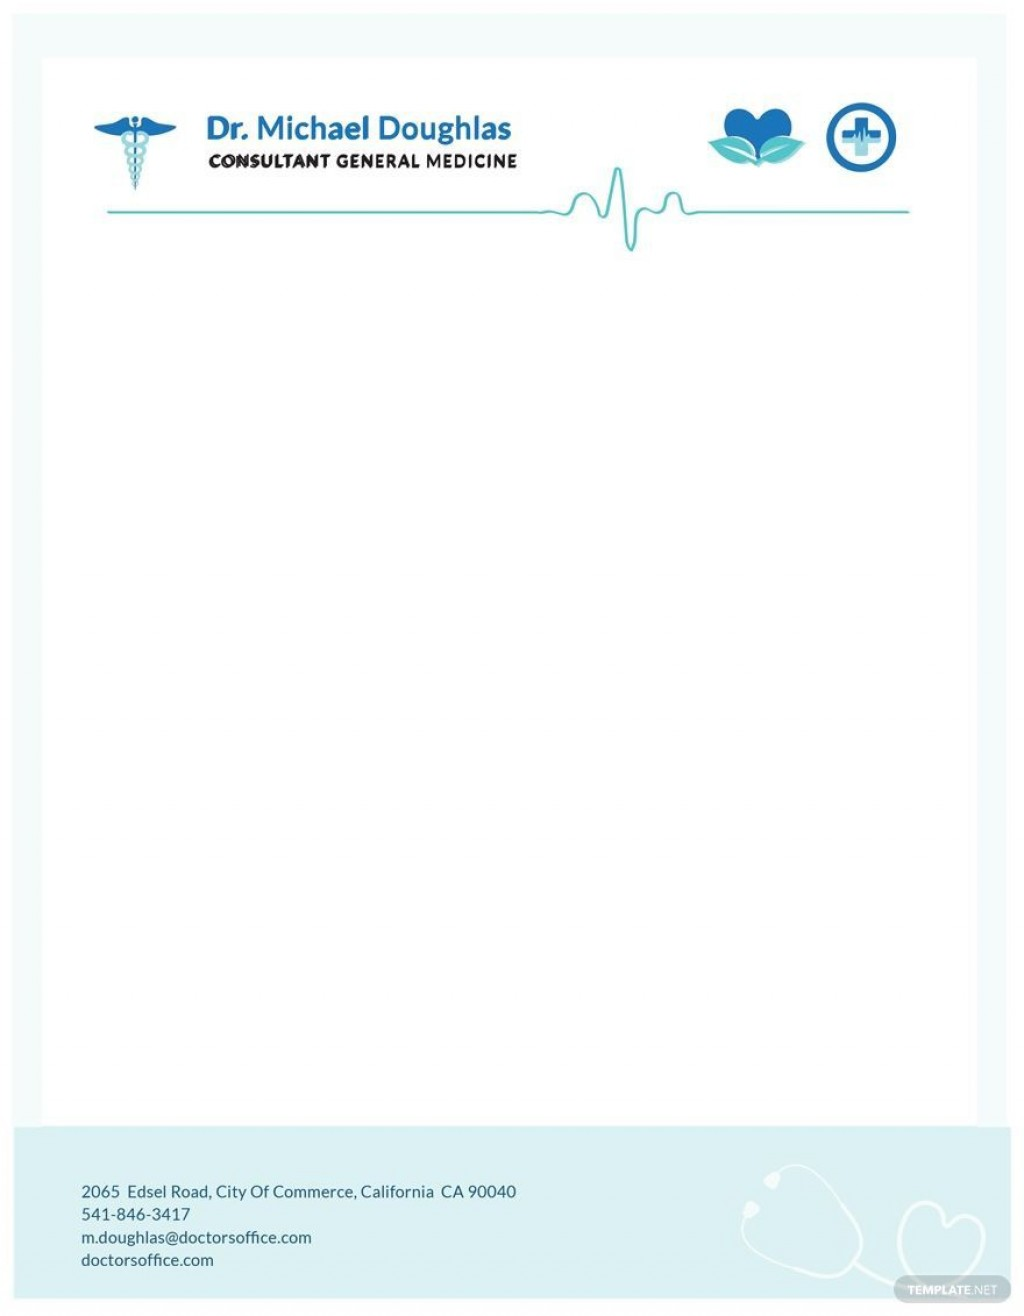 004 Unbelievable Doctor Letterhead Format In Word Free Download Concept  DesignLarge